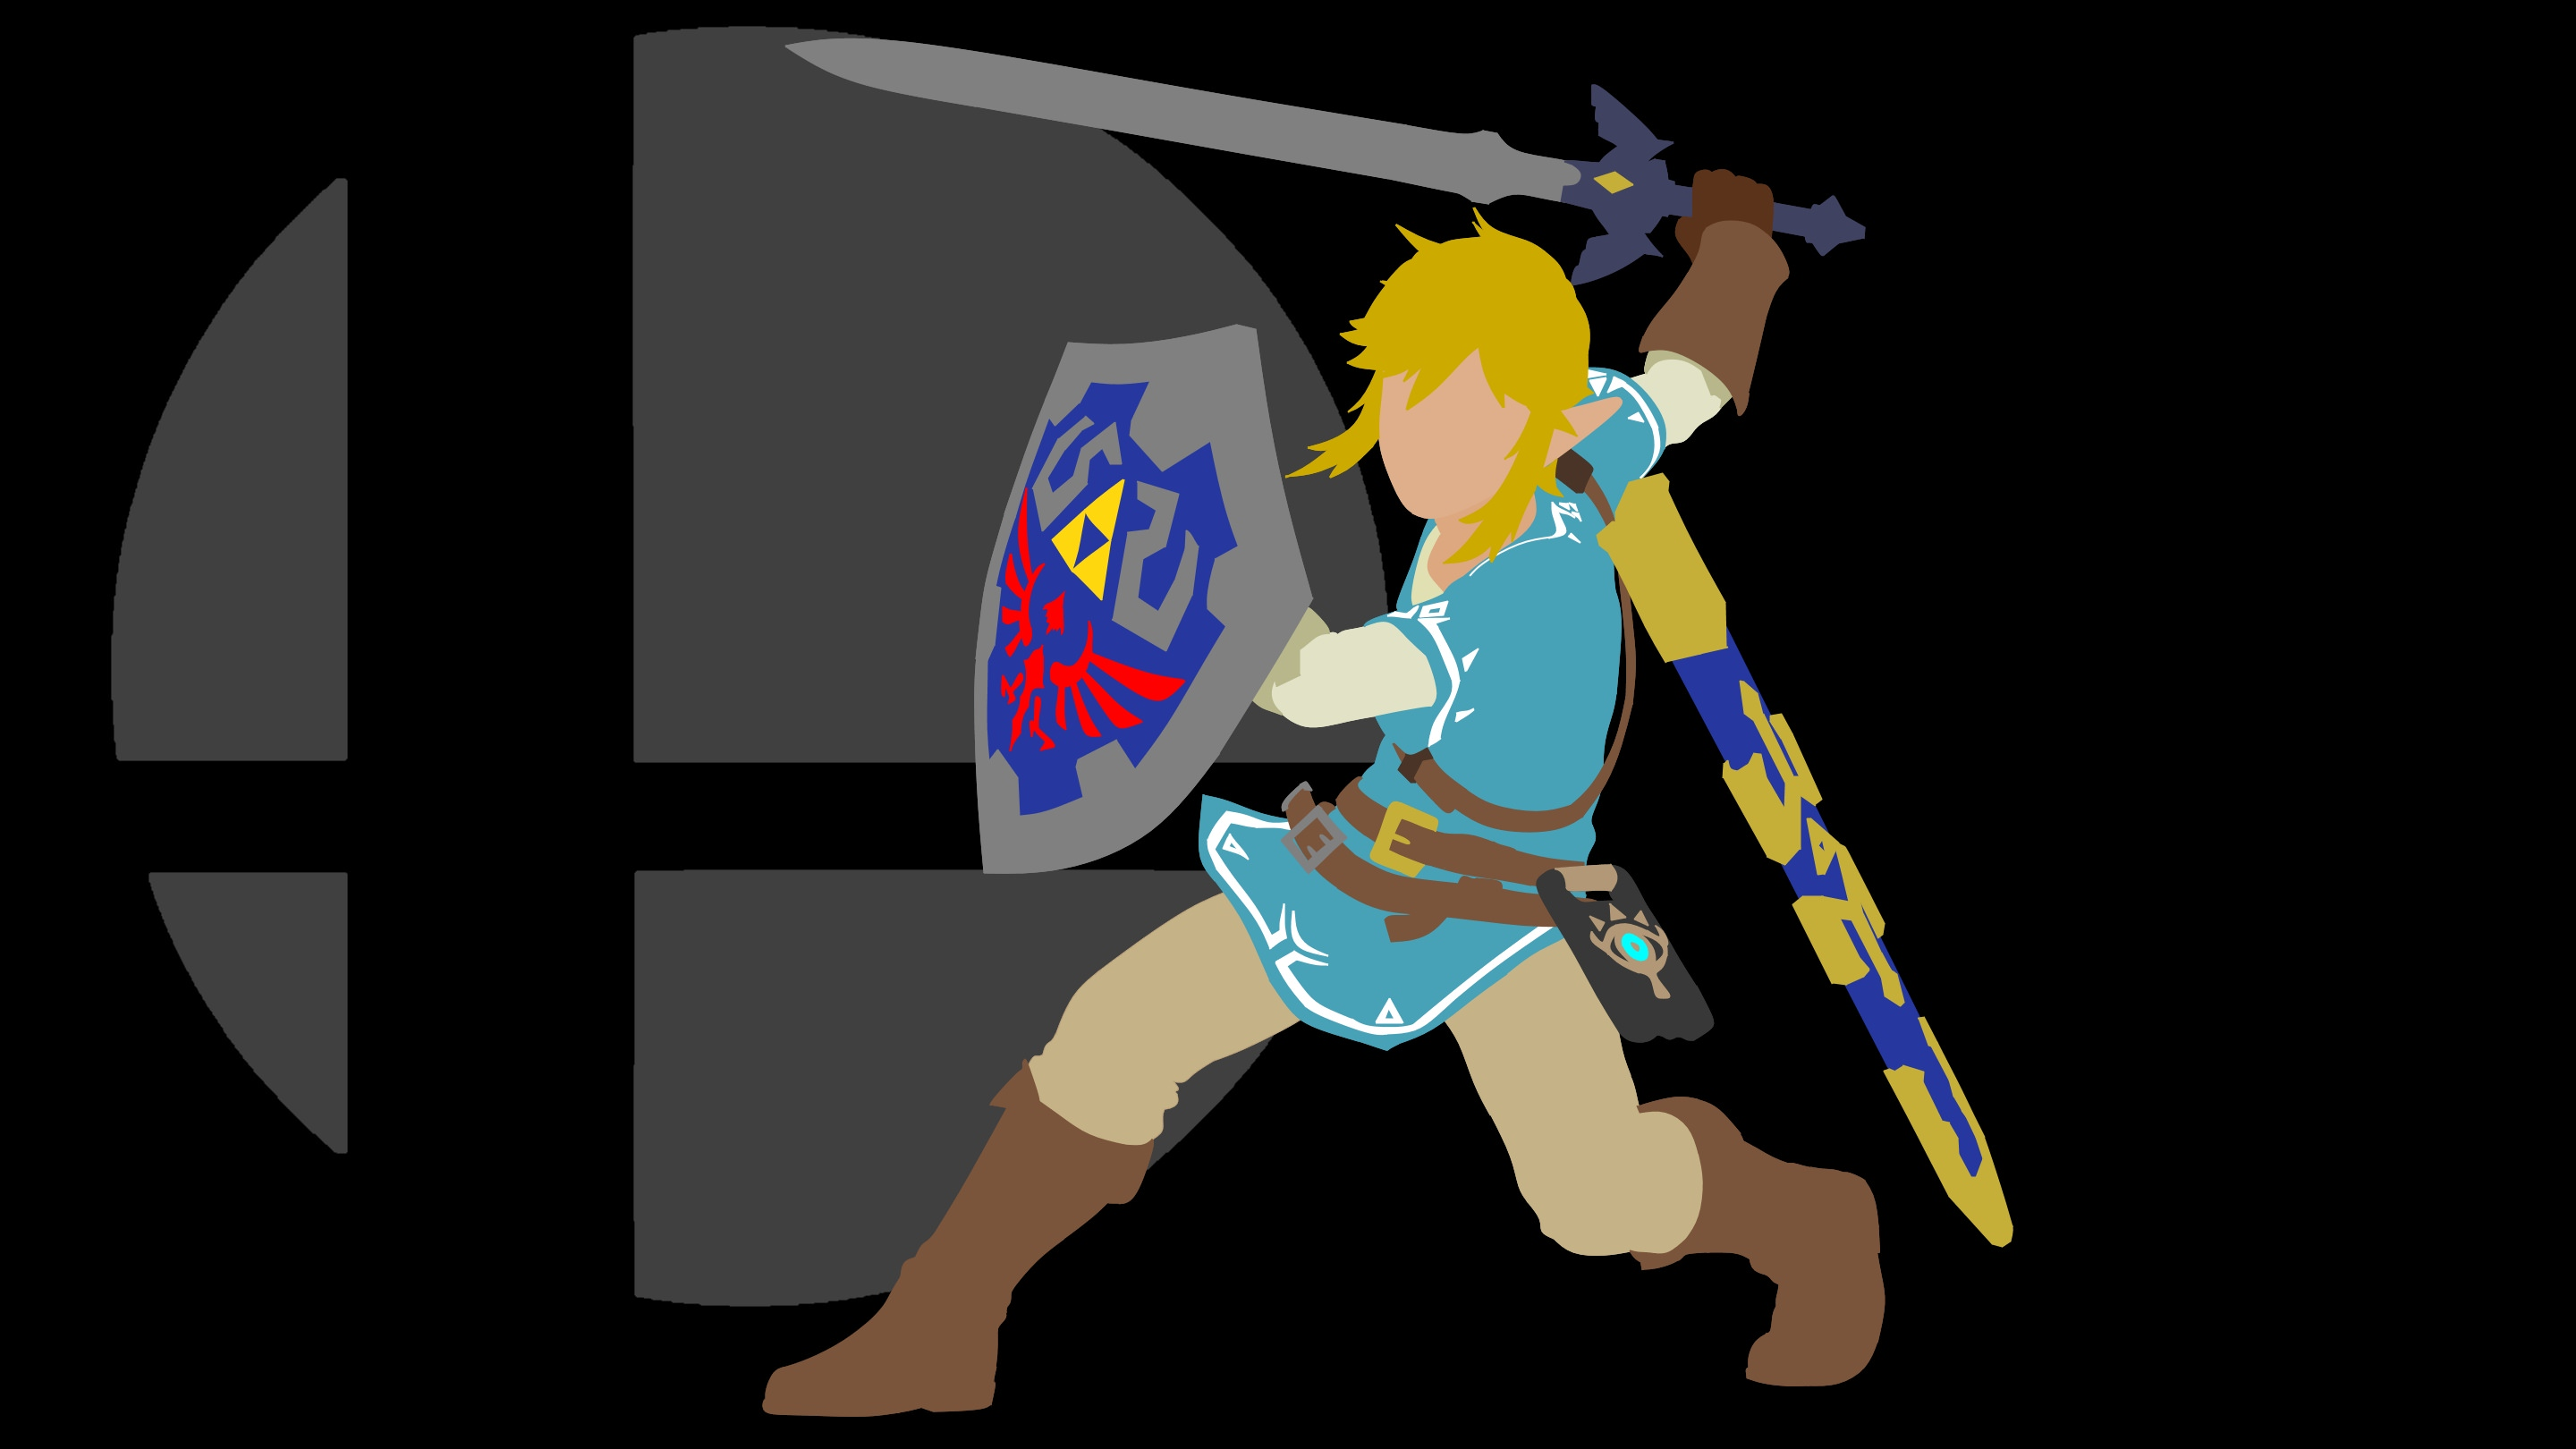 Link Smash Bros Black Background   Album on Imgur 2880x1620